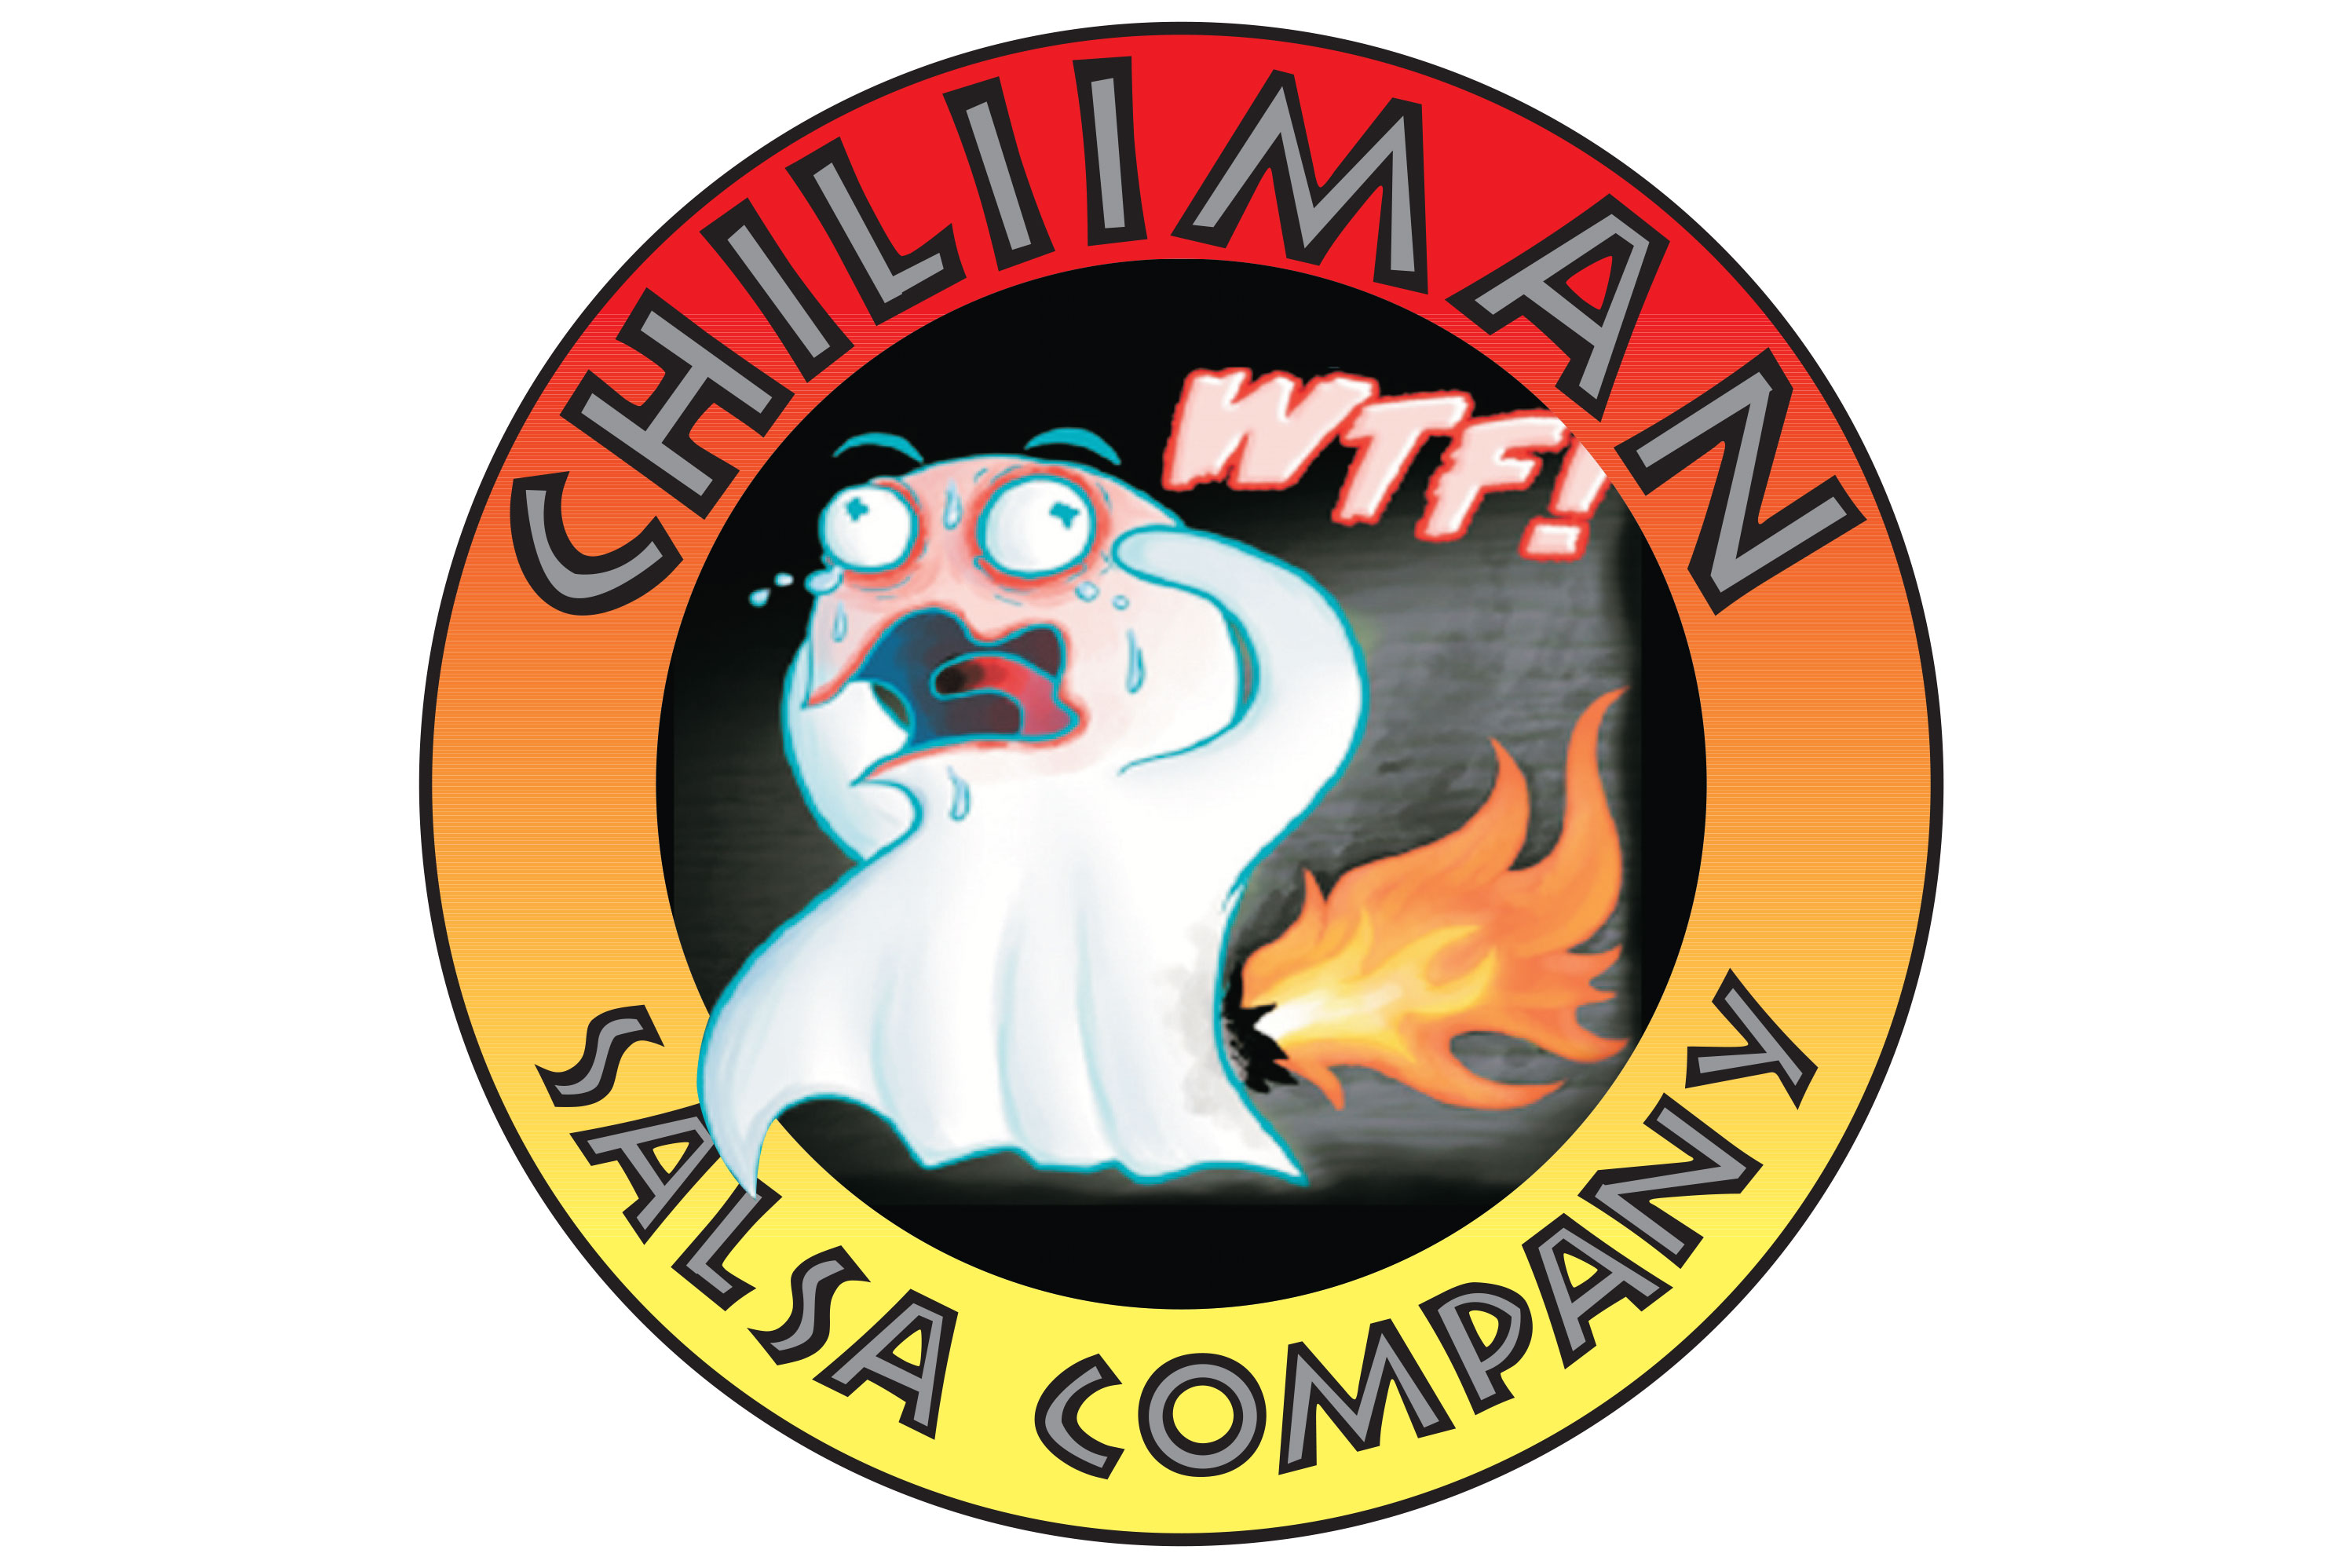 chilliman-logo-3_cropped